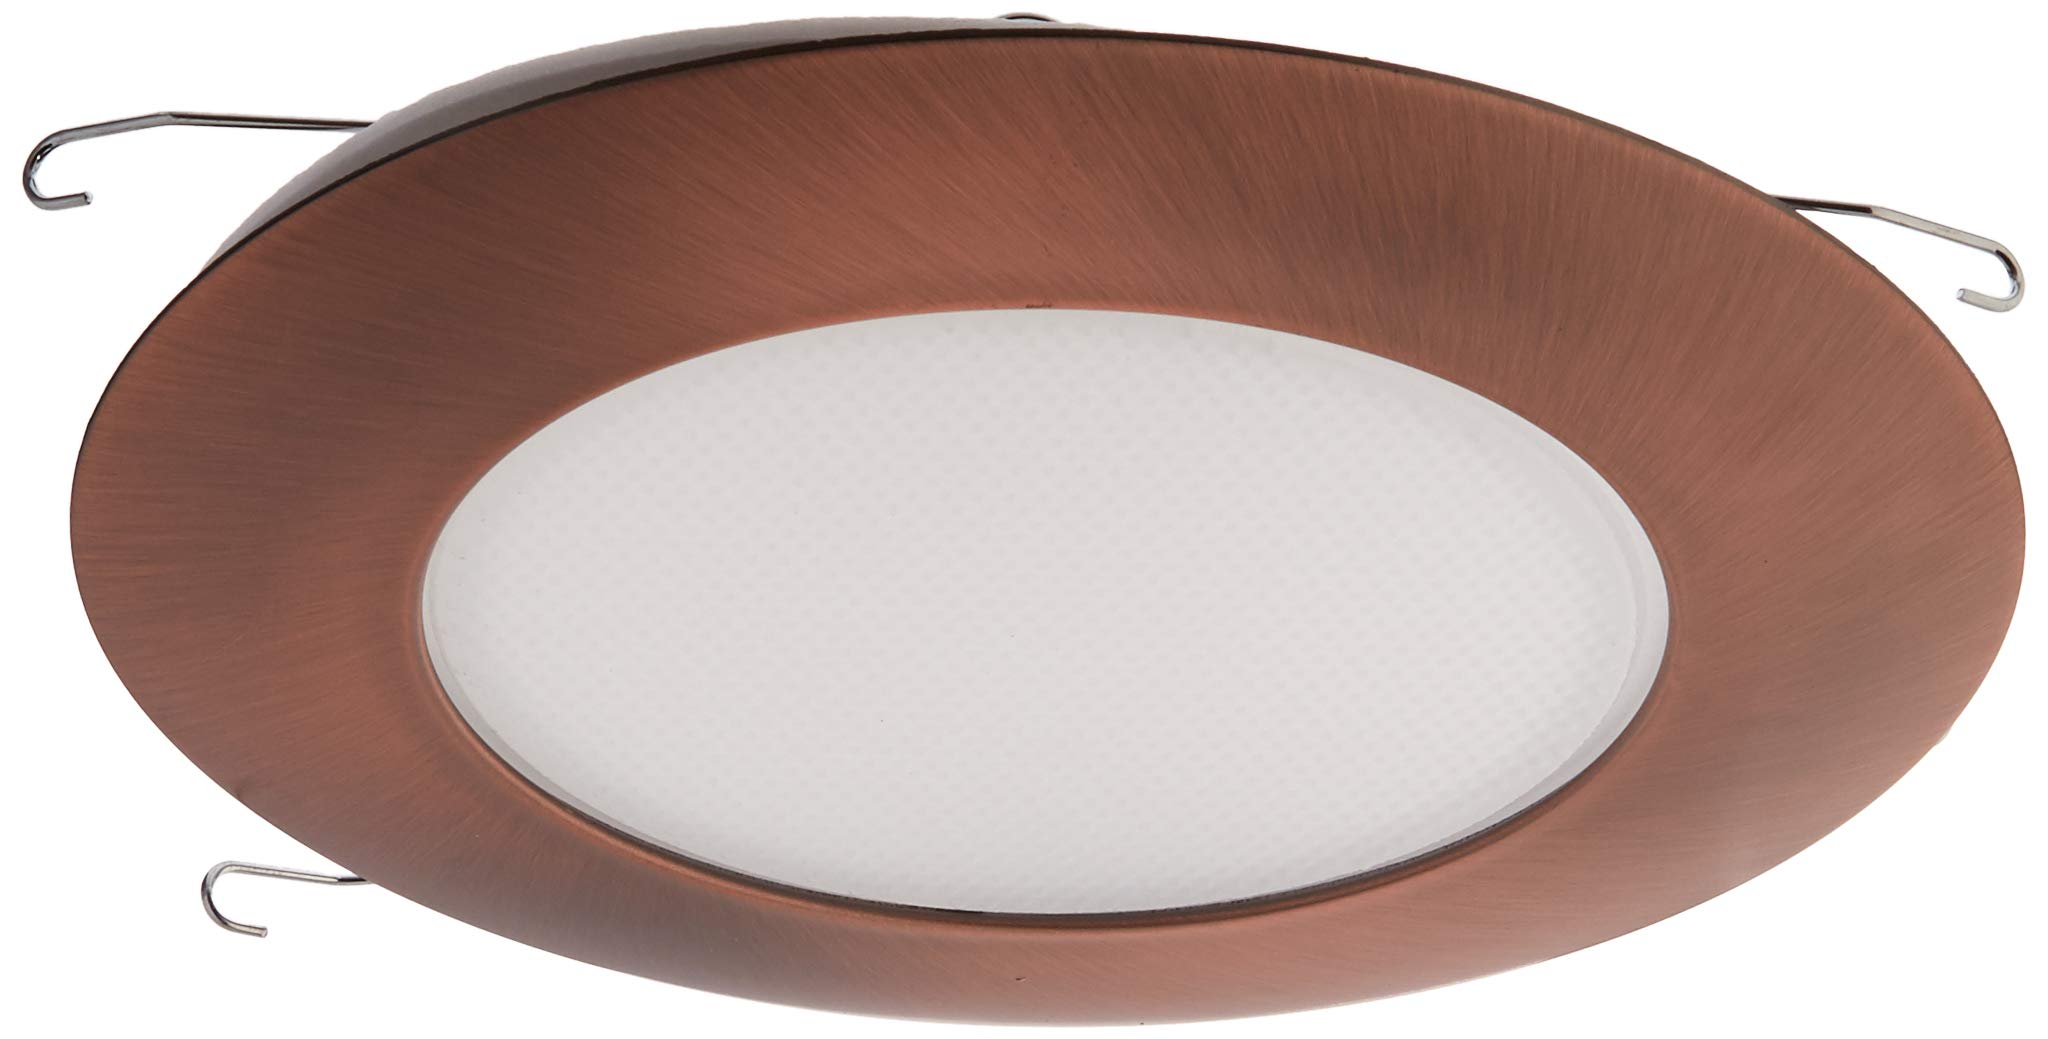 NICOR Lighting 6-Inch Recessed Lexan Shower Trim with Albalite Lens, Bronze (17505BZ)